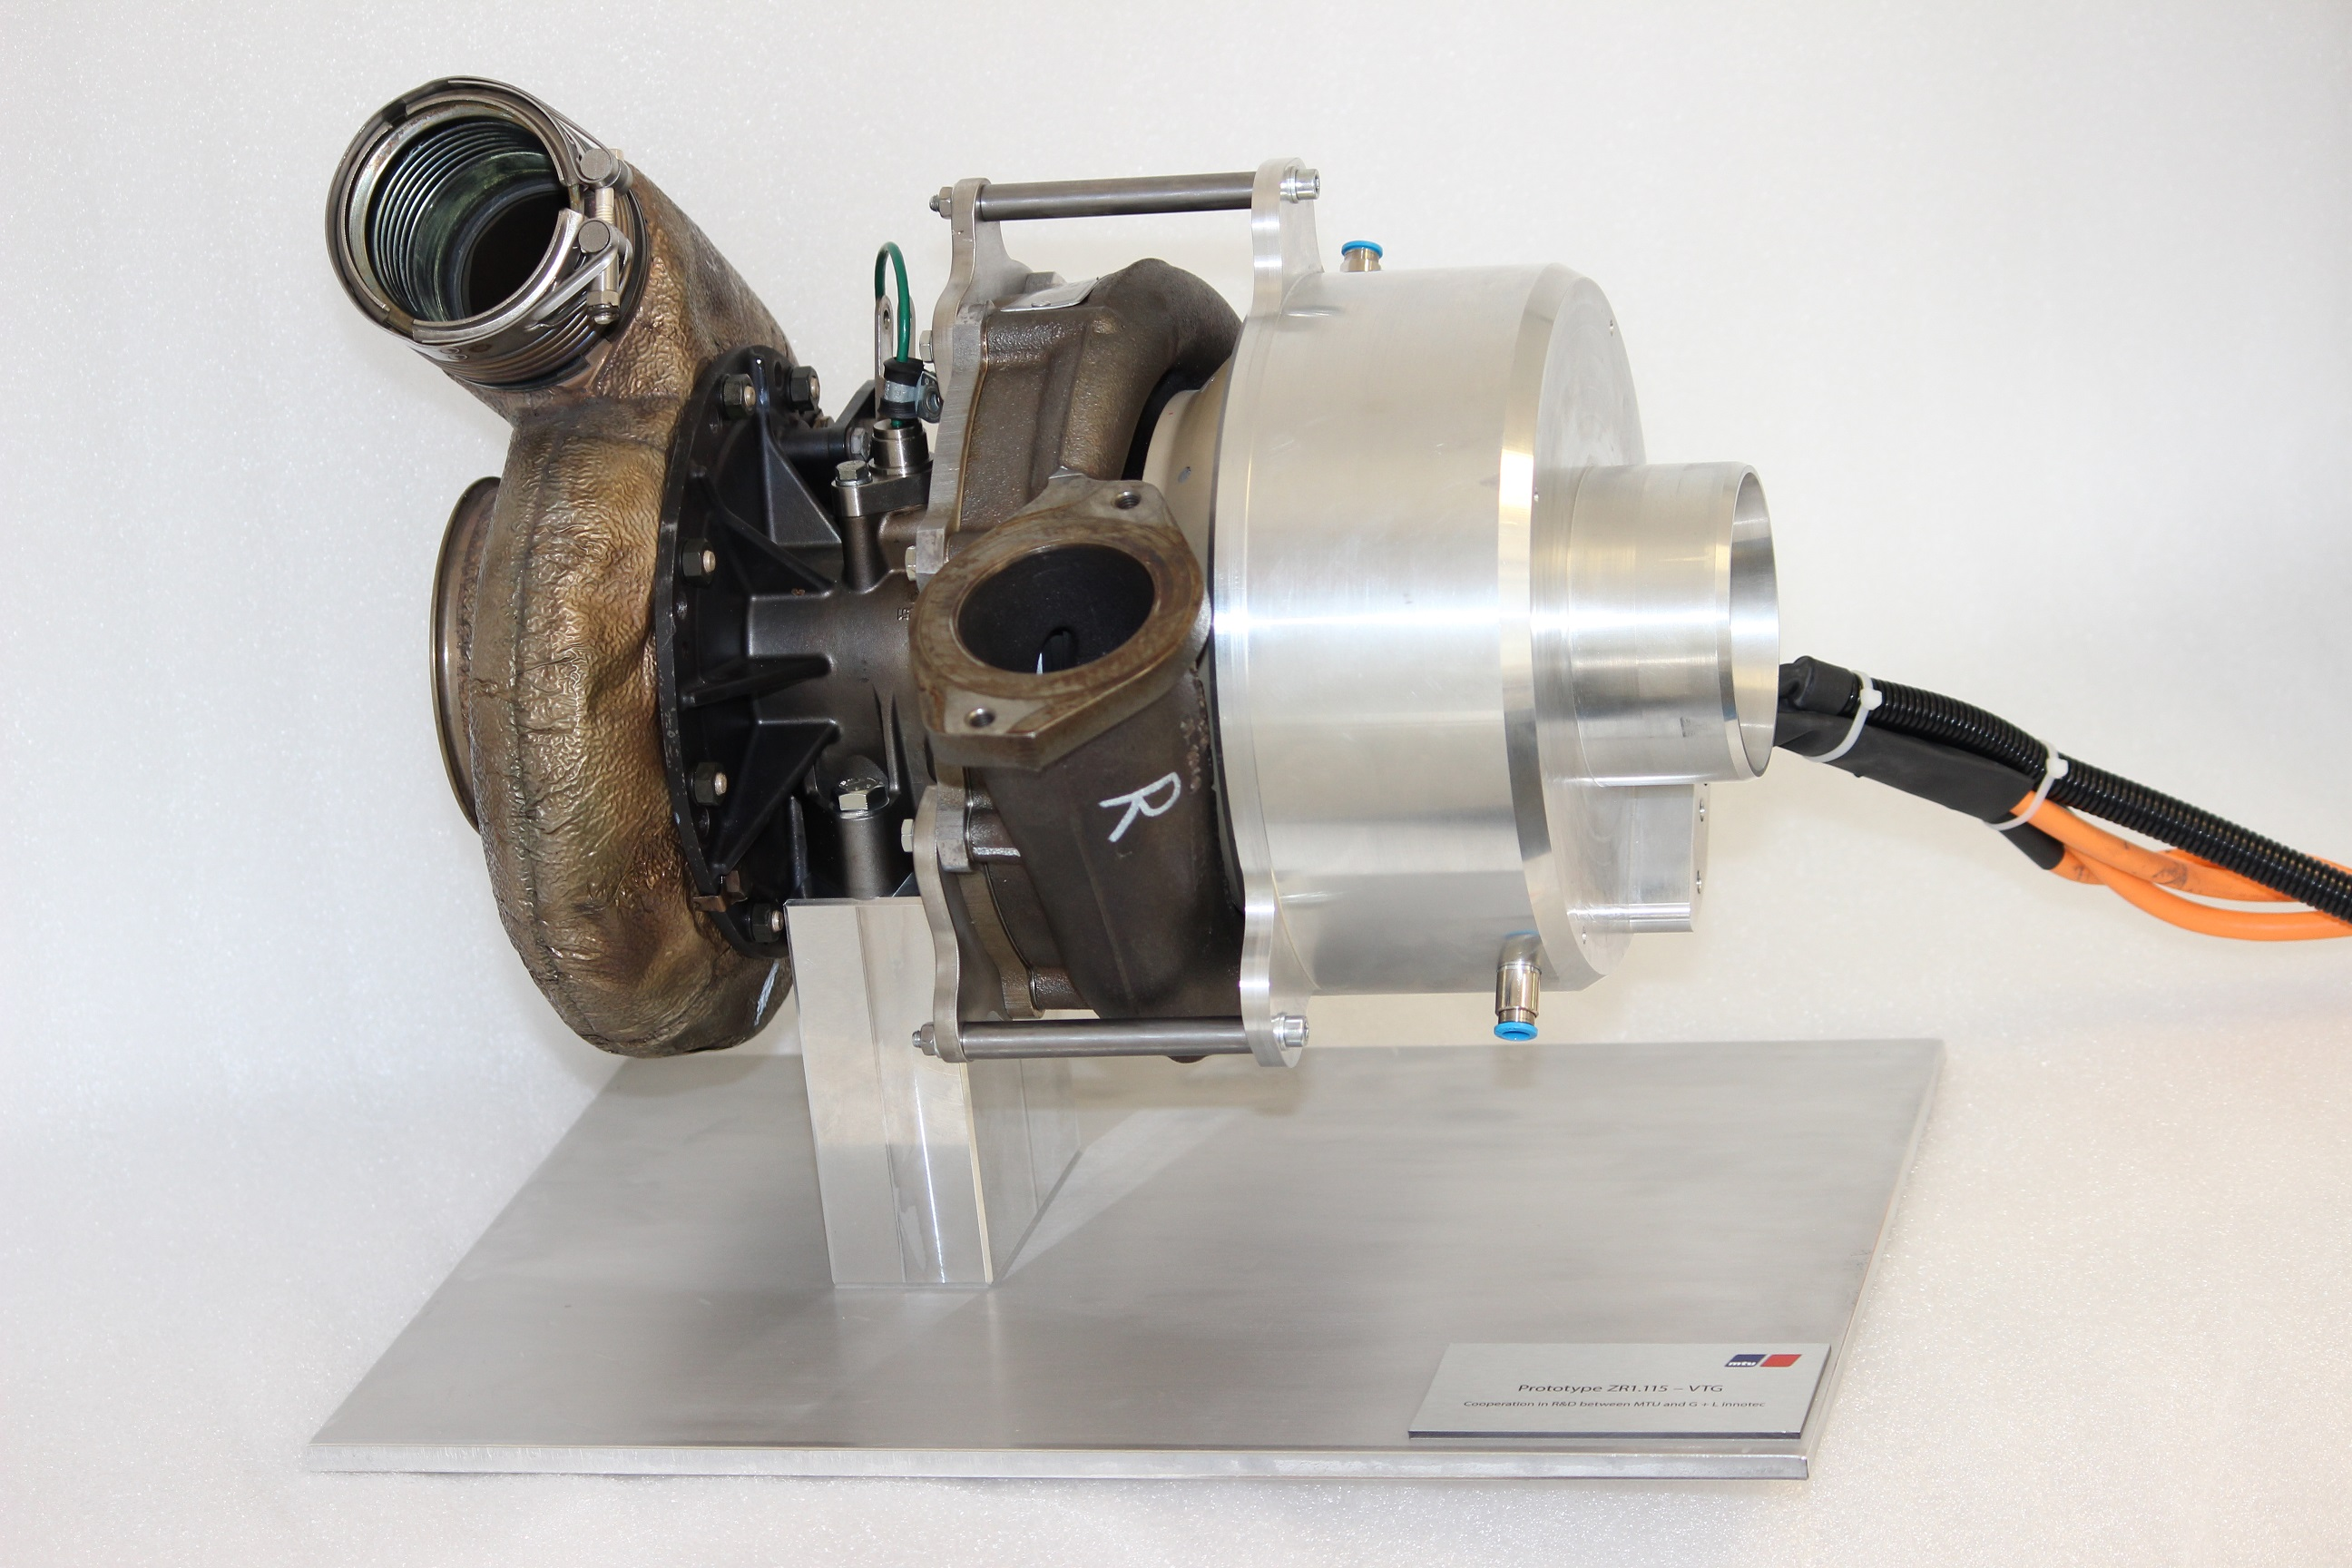 Presented prototype MTU turbocharger with Cross-Charger® technology